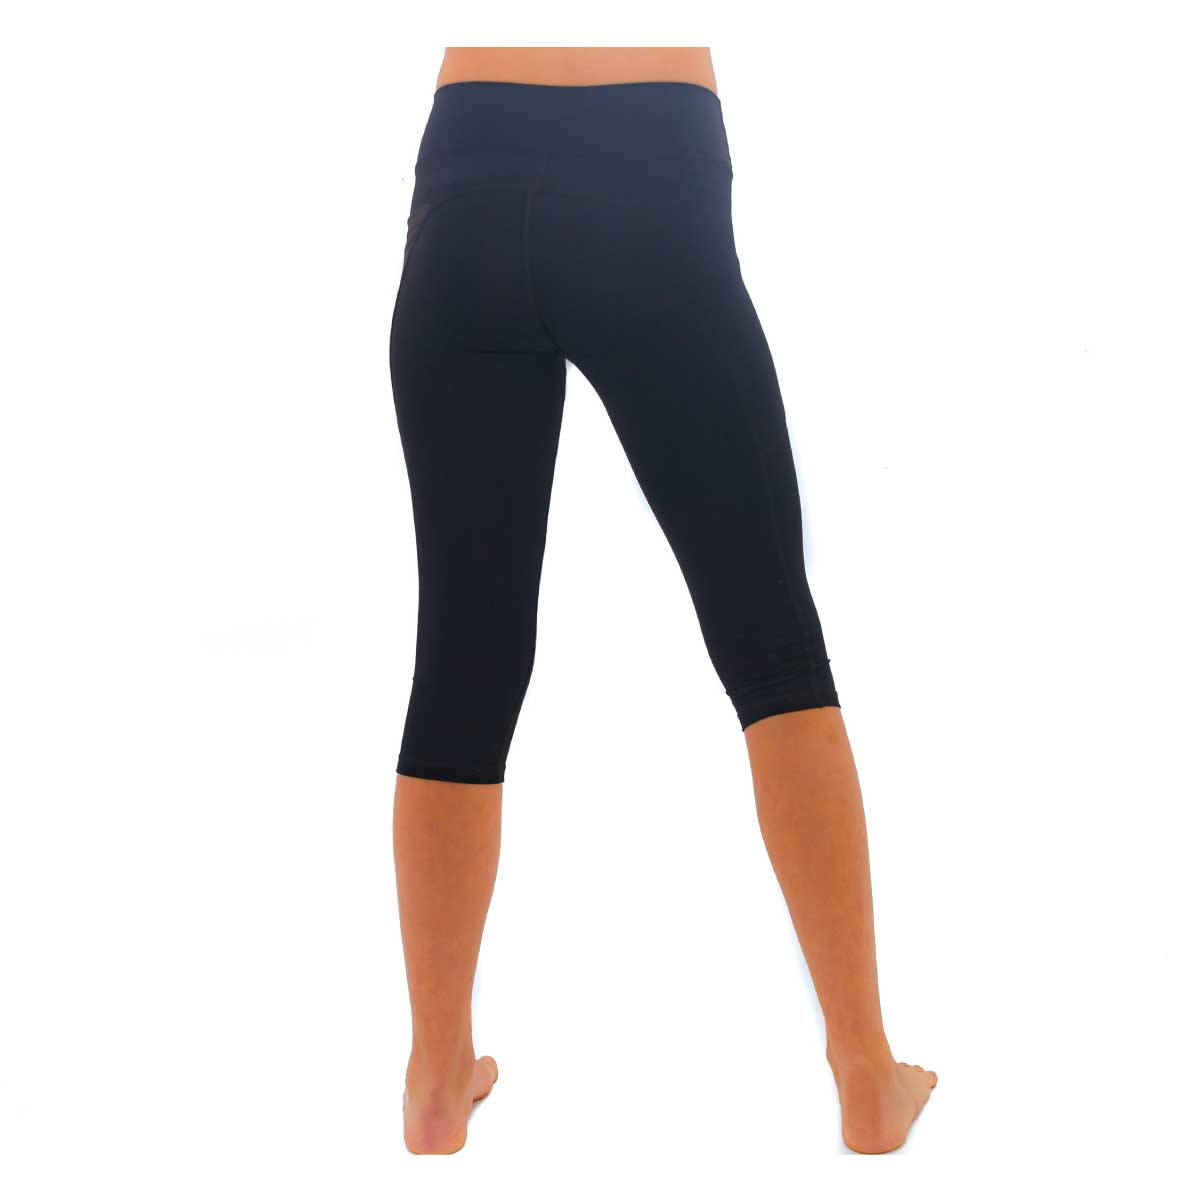 GIRL'S BELIEVE CROPPED LEGGINGS